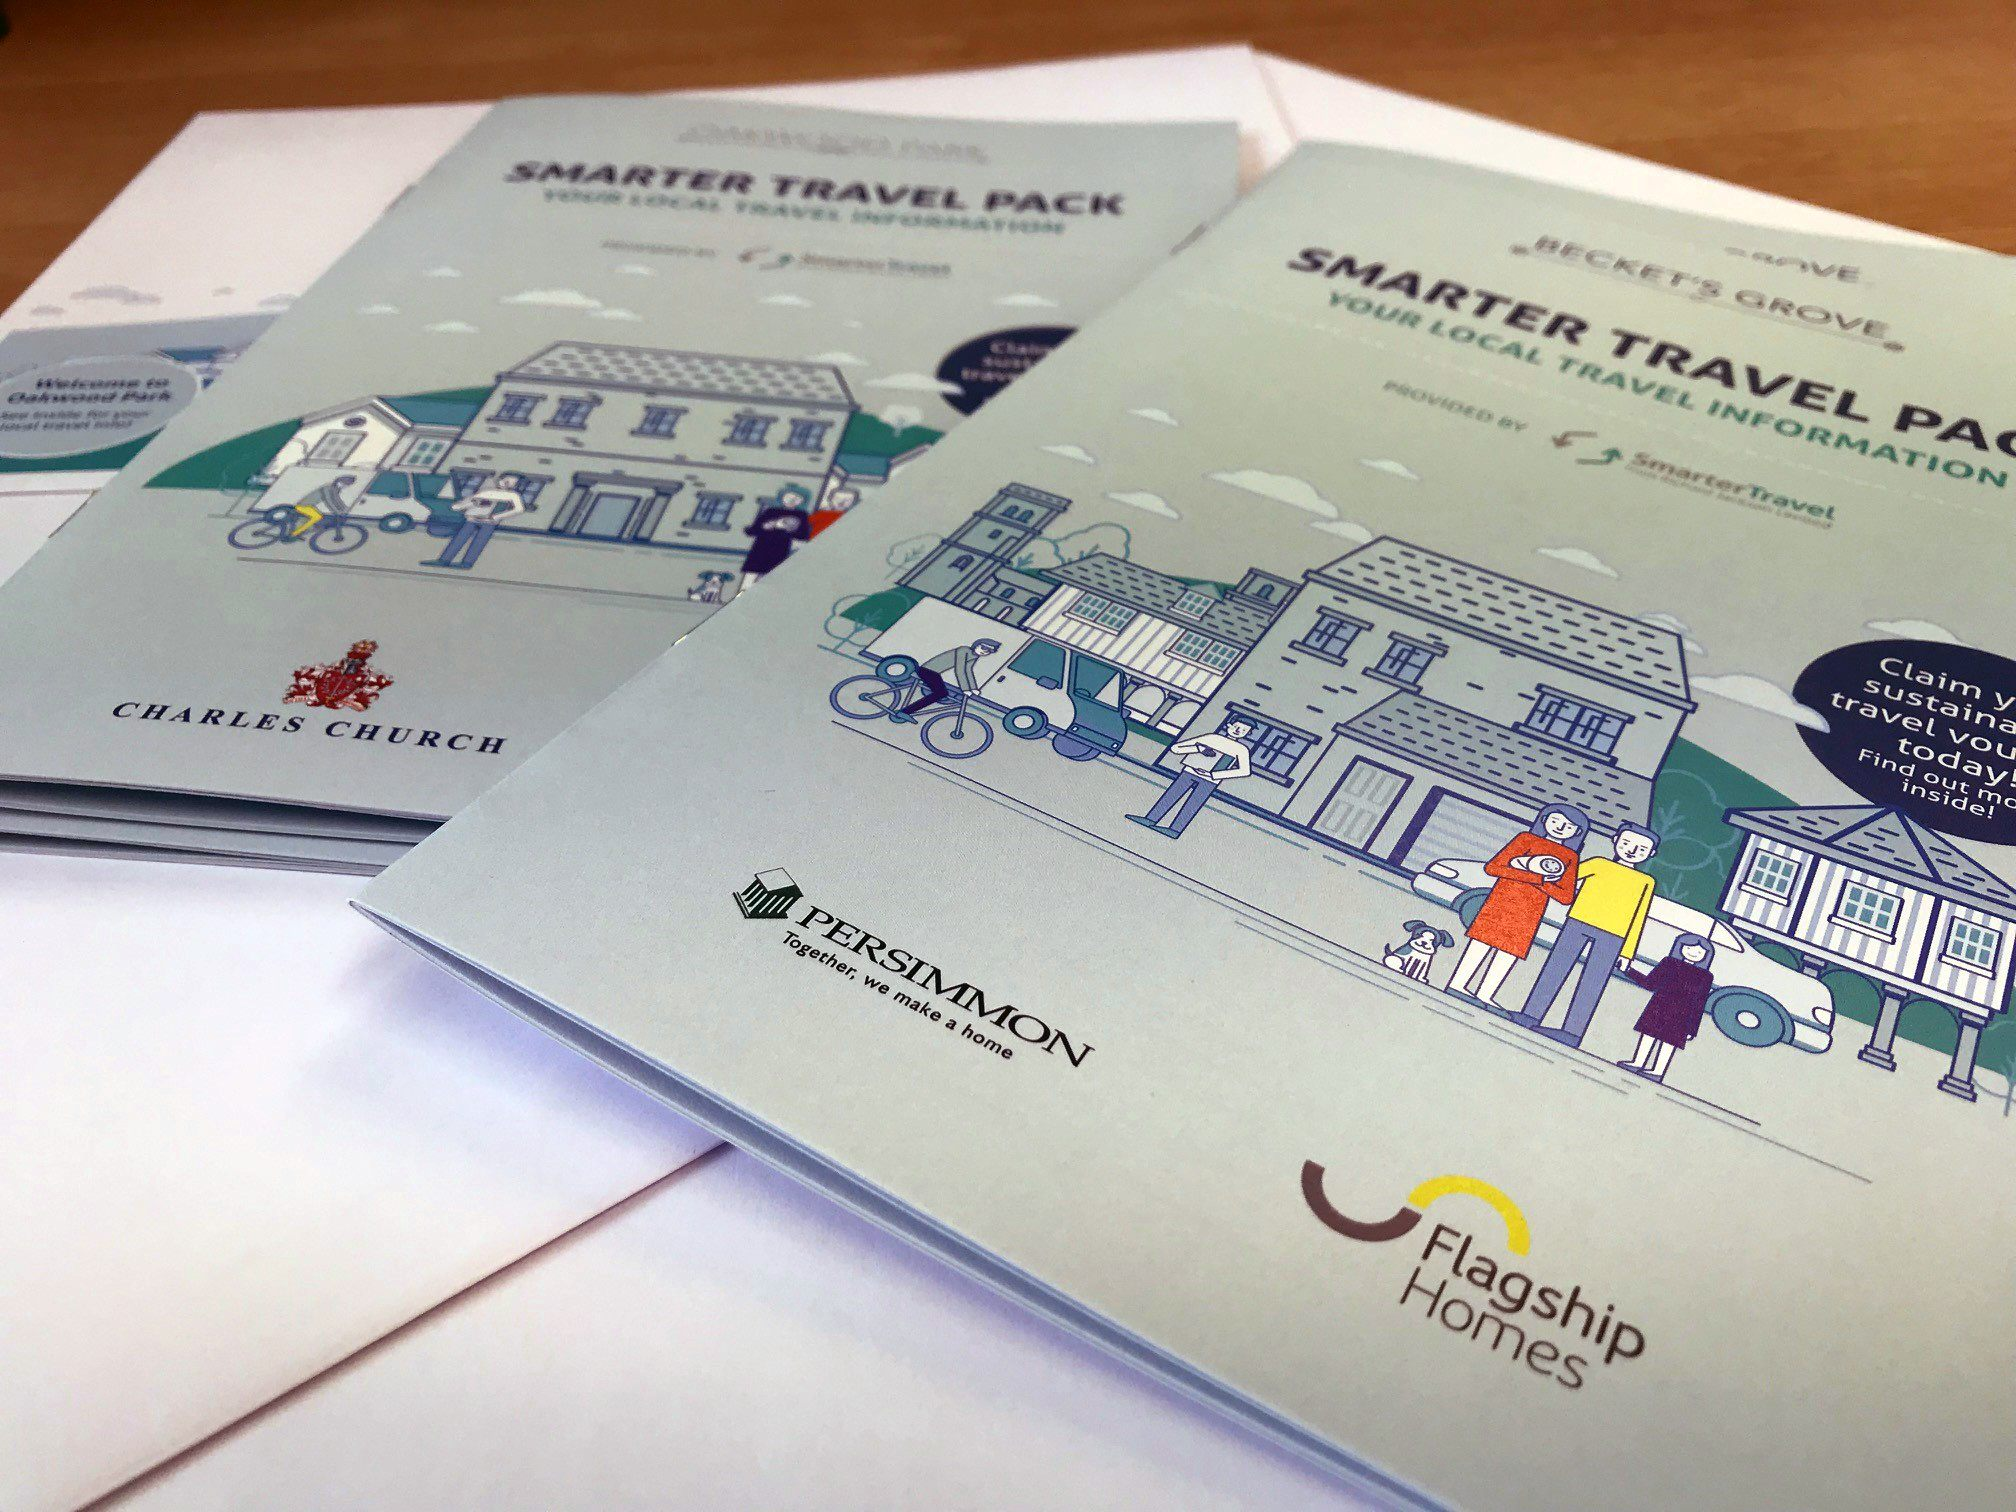 Travel Information Packs | Smarter Travel Ltd